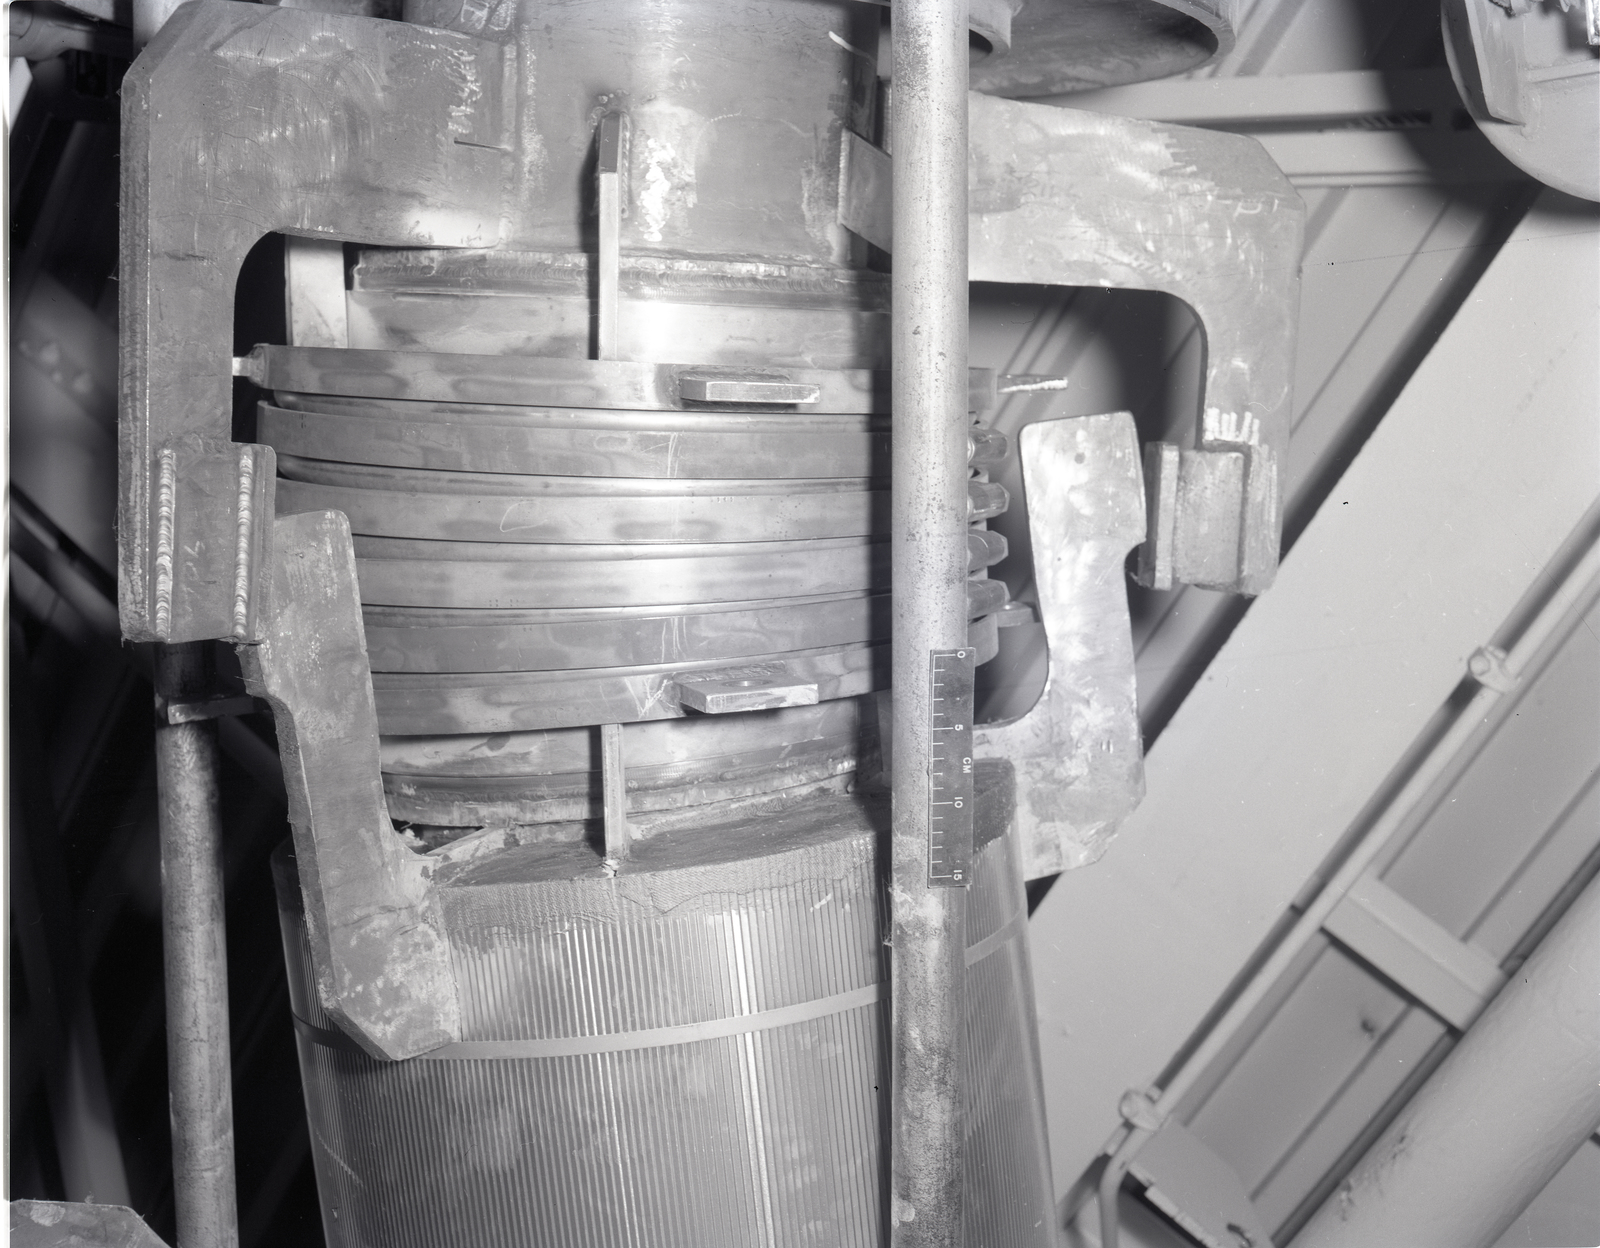 CROSSOVER BELLOWS ASSEMBLY IN THE HIGH PRESSURE FACILITY HPF